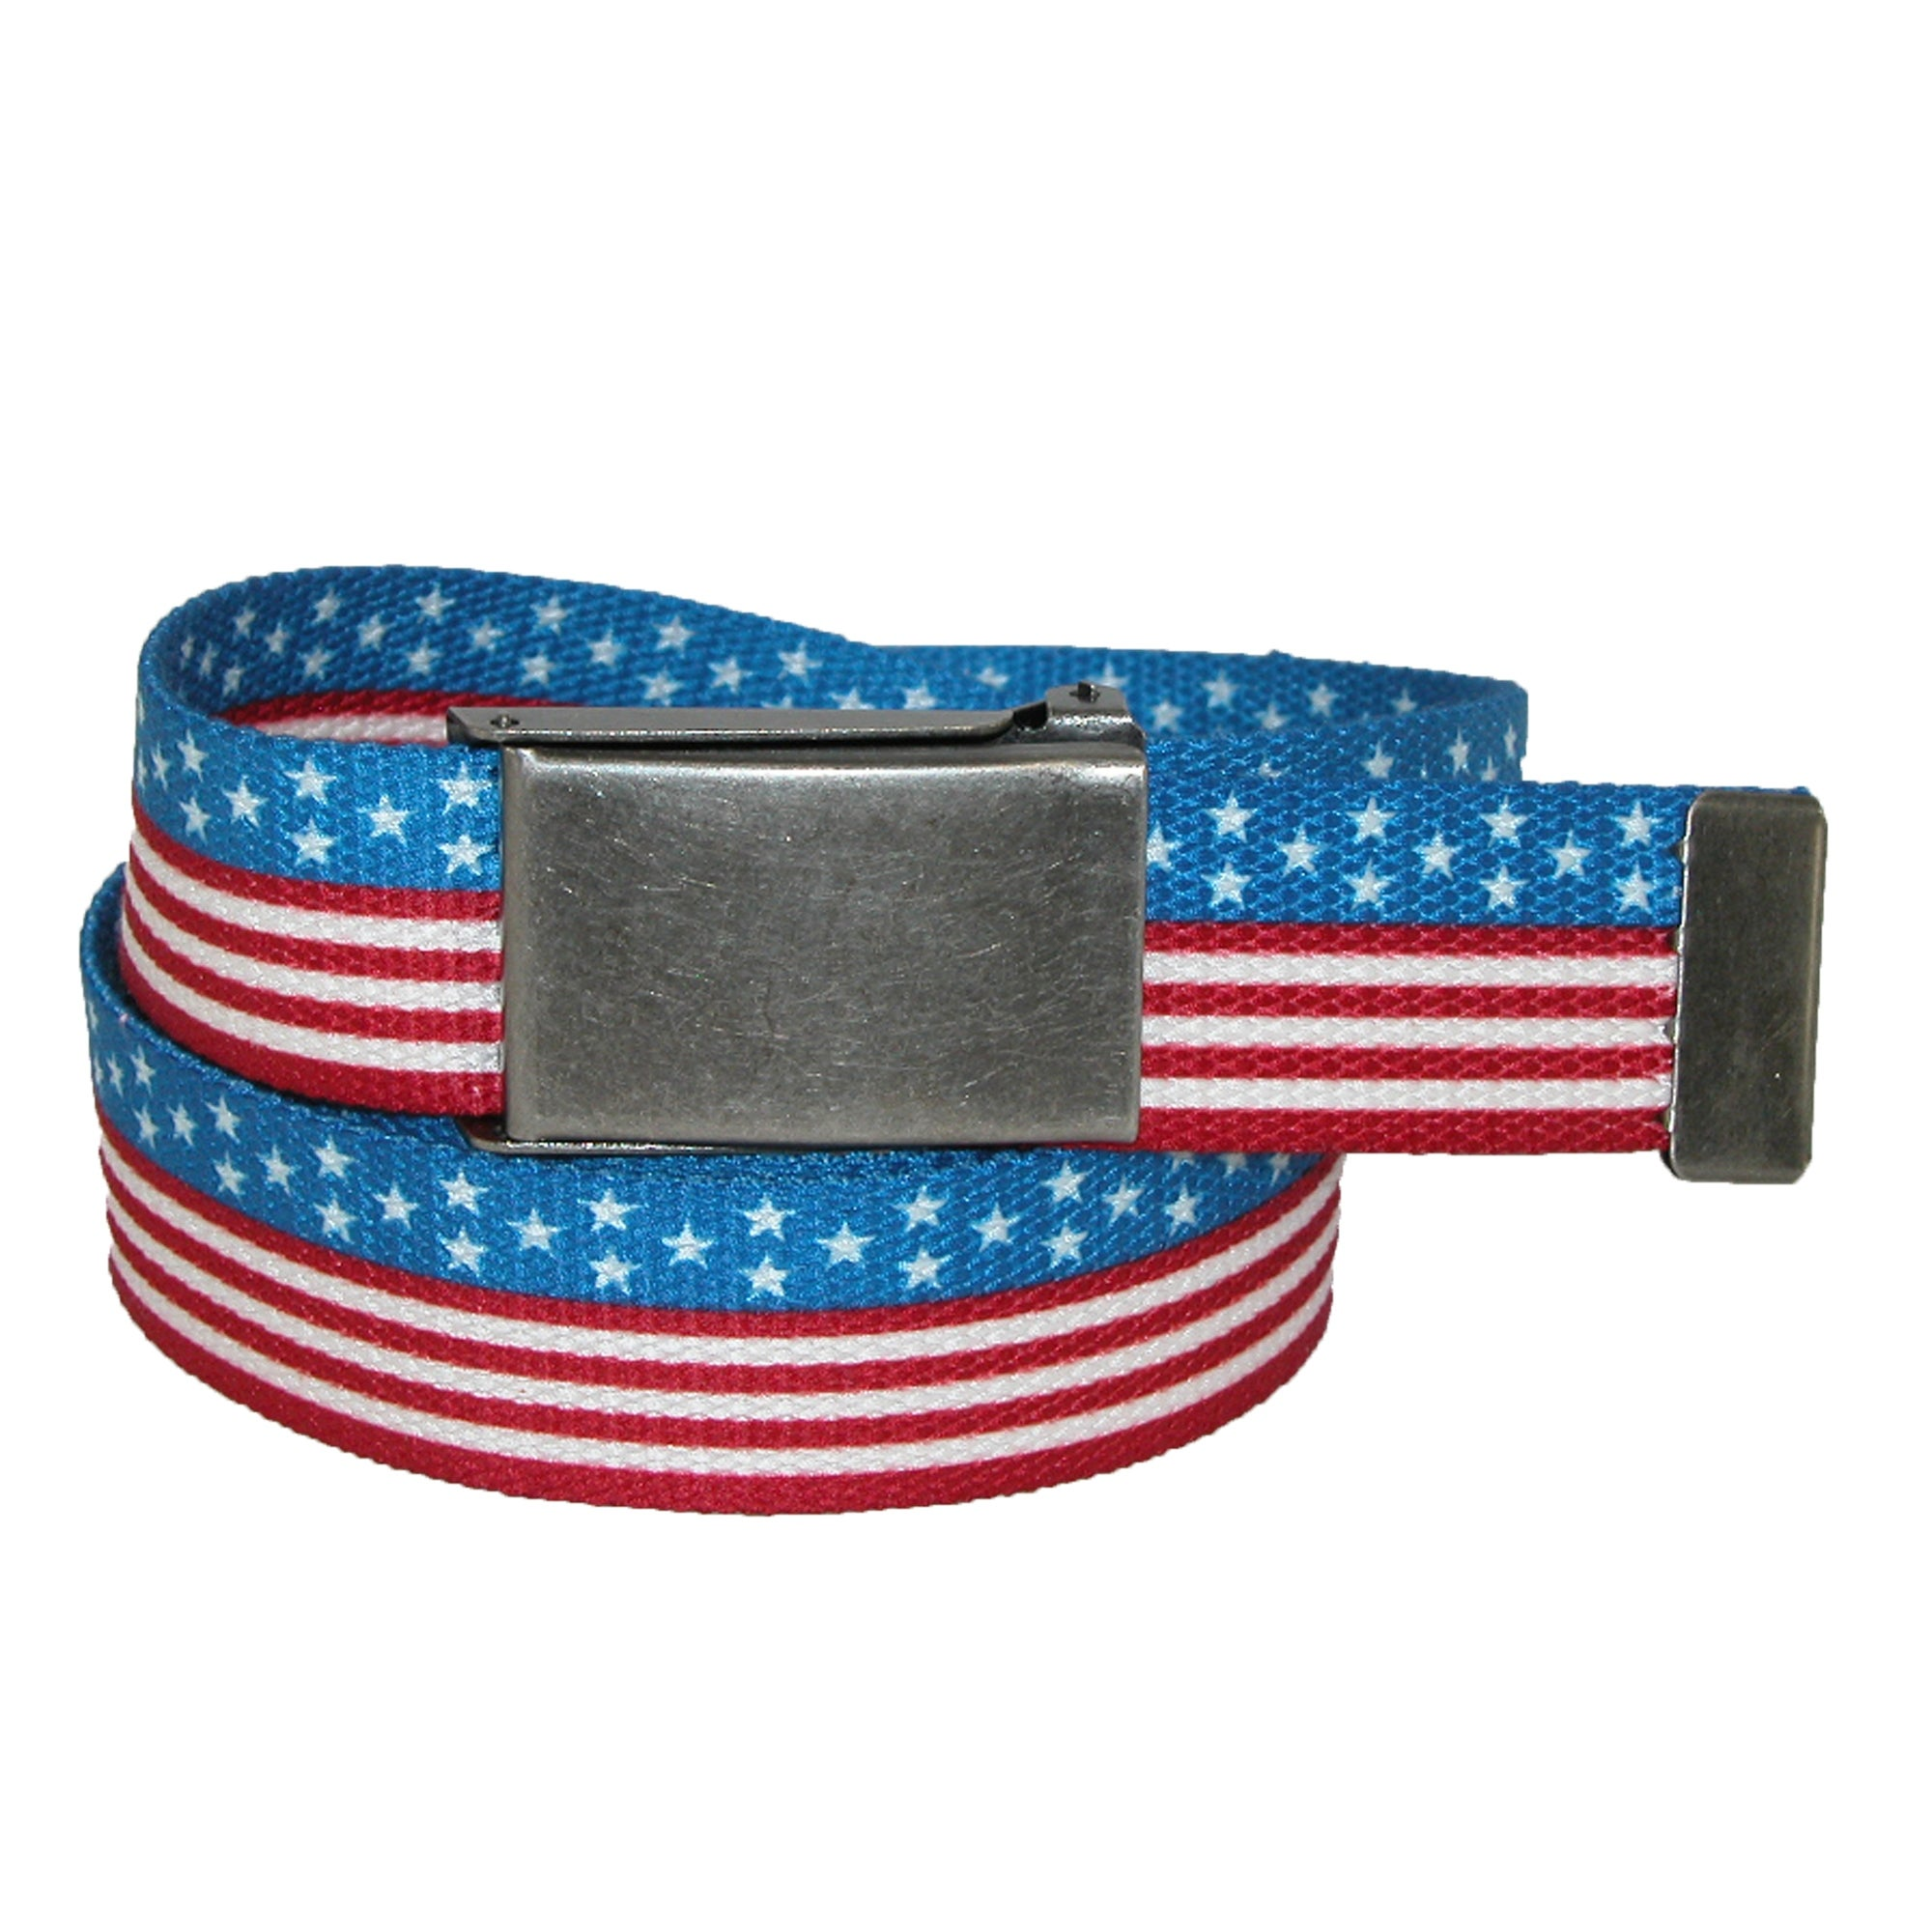 Clip 1.5 Inch Wide USA Stars and Stripes Suspenders